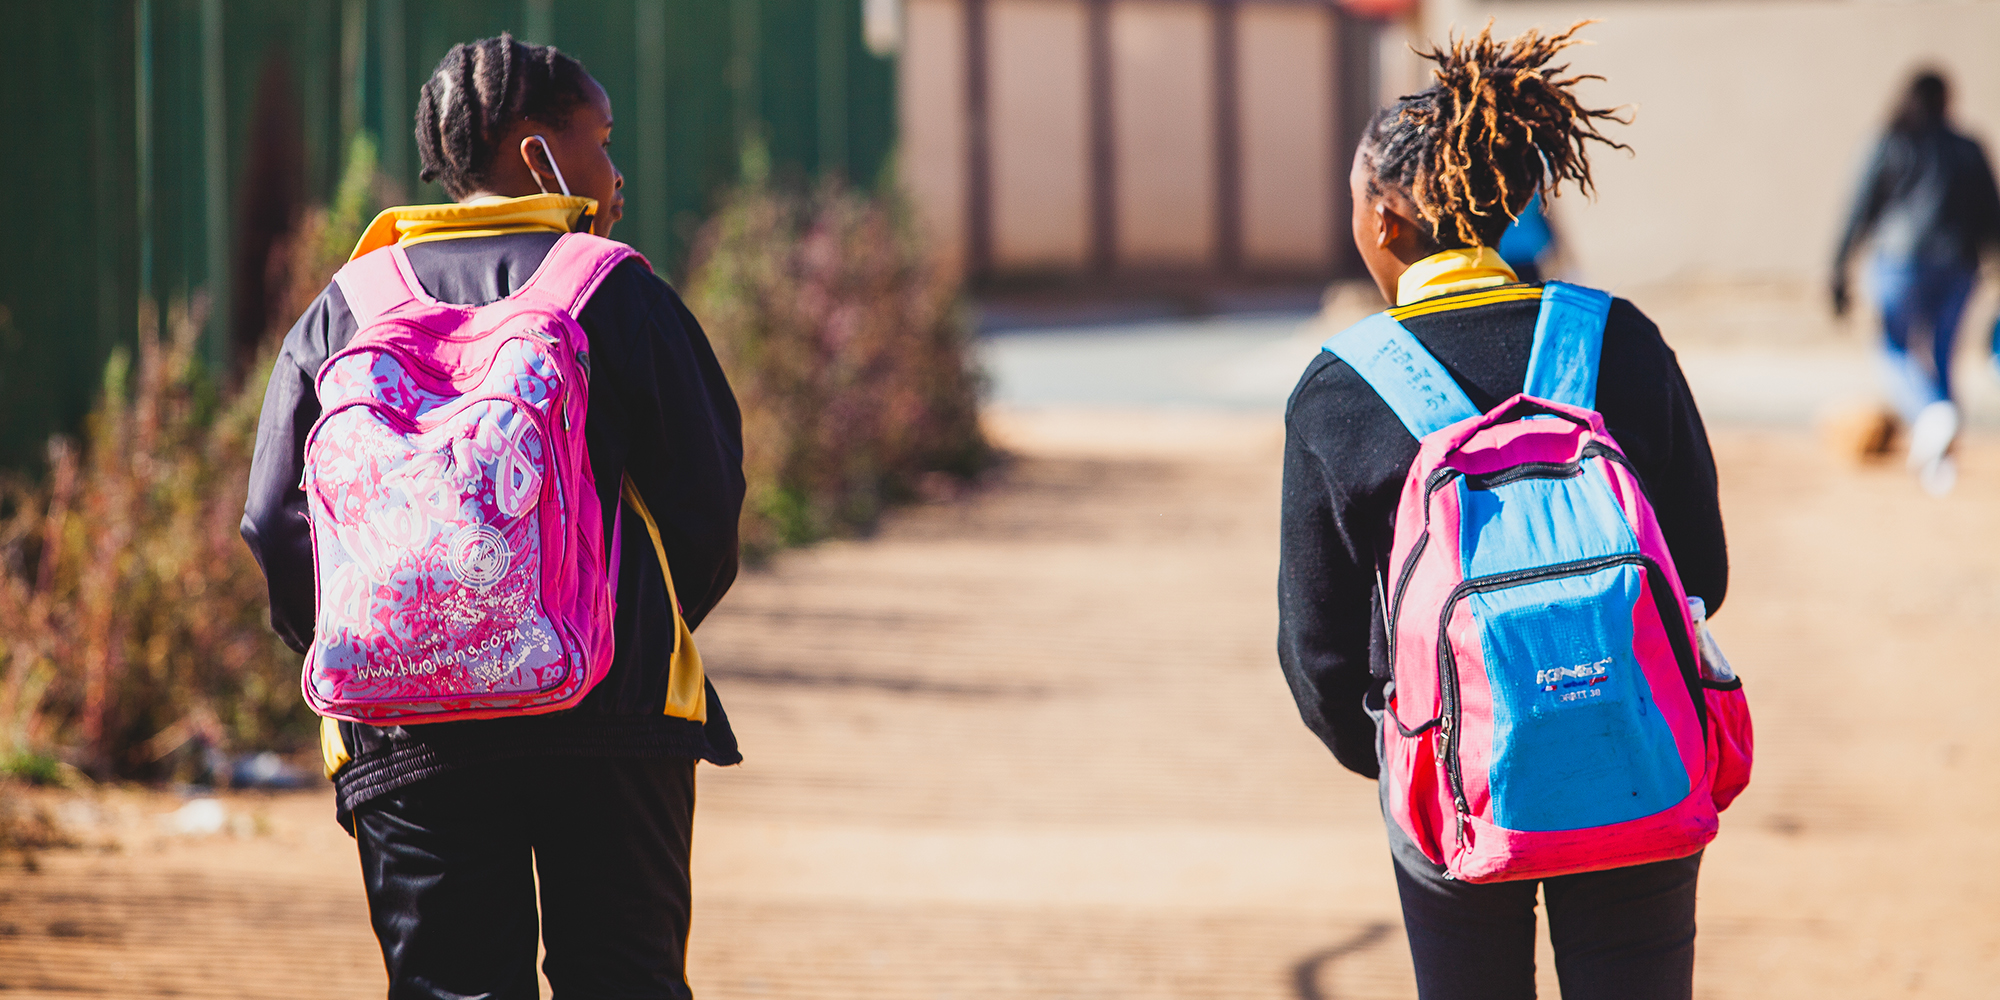 OP-ED: Our children must go back to school